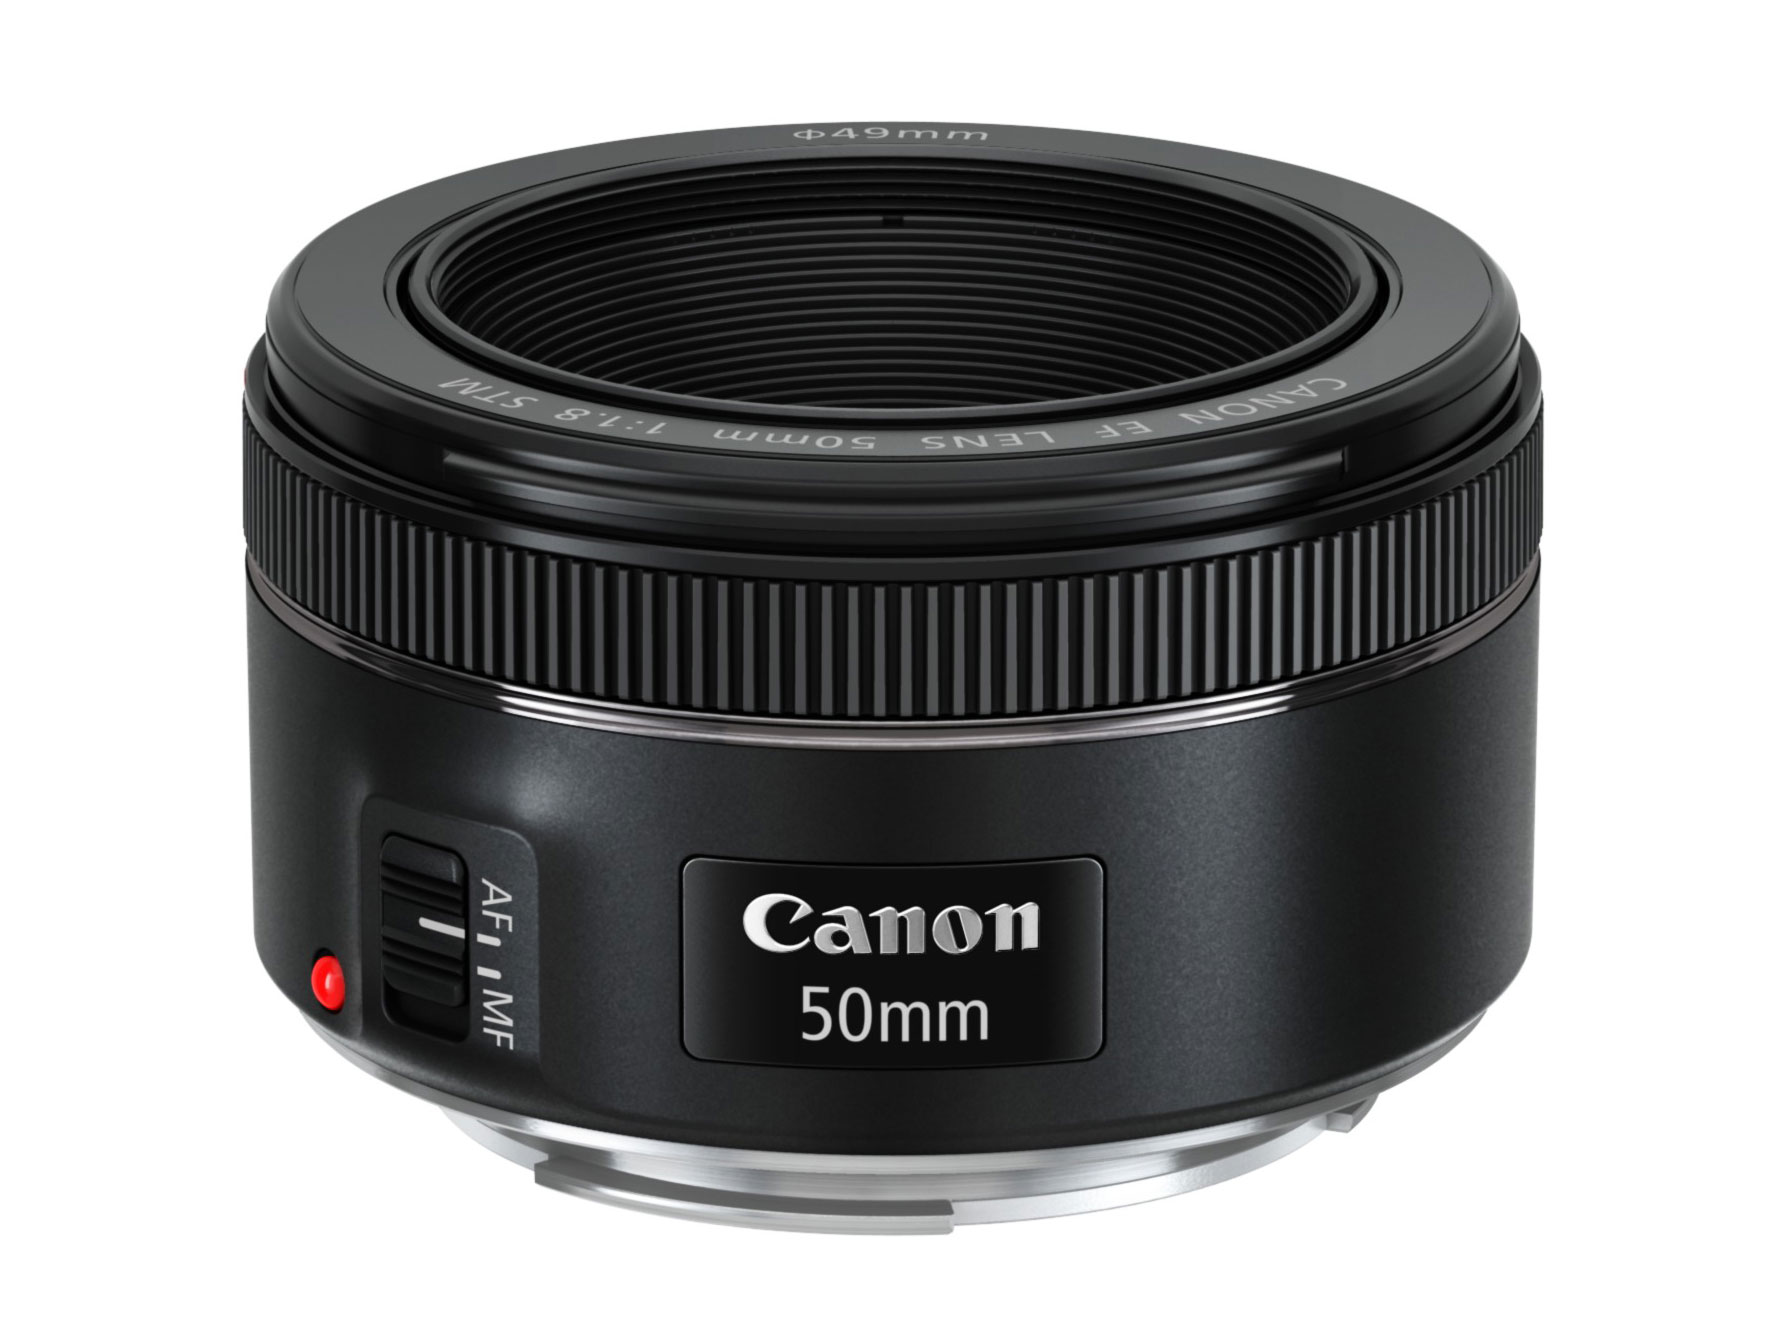 Canon Reveals All New, Sturdier 'Nifty Fifty' 50mm f/1.8 Lens